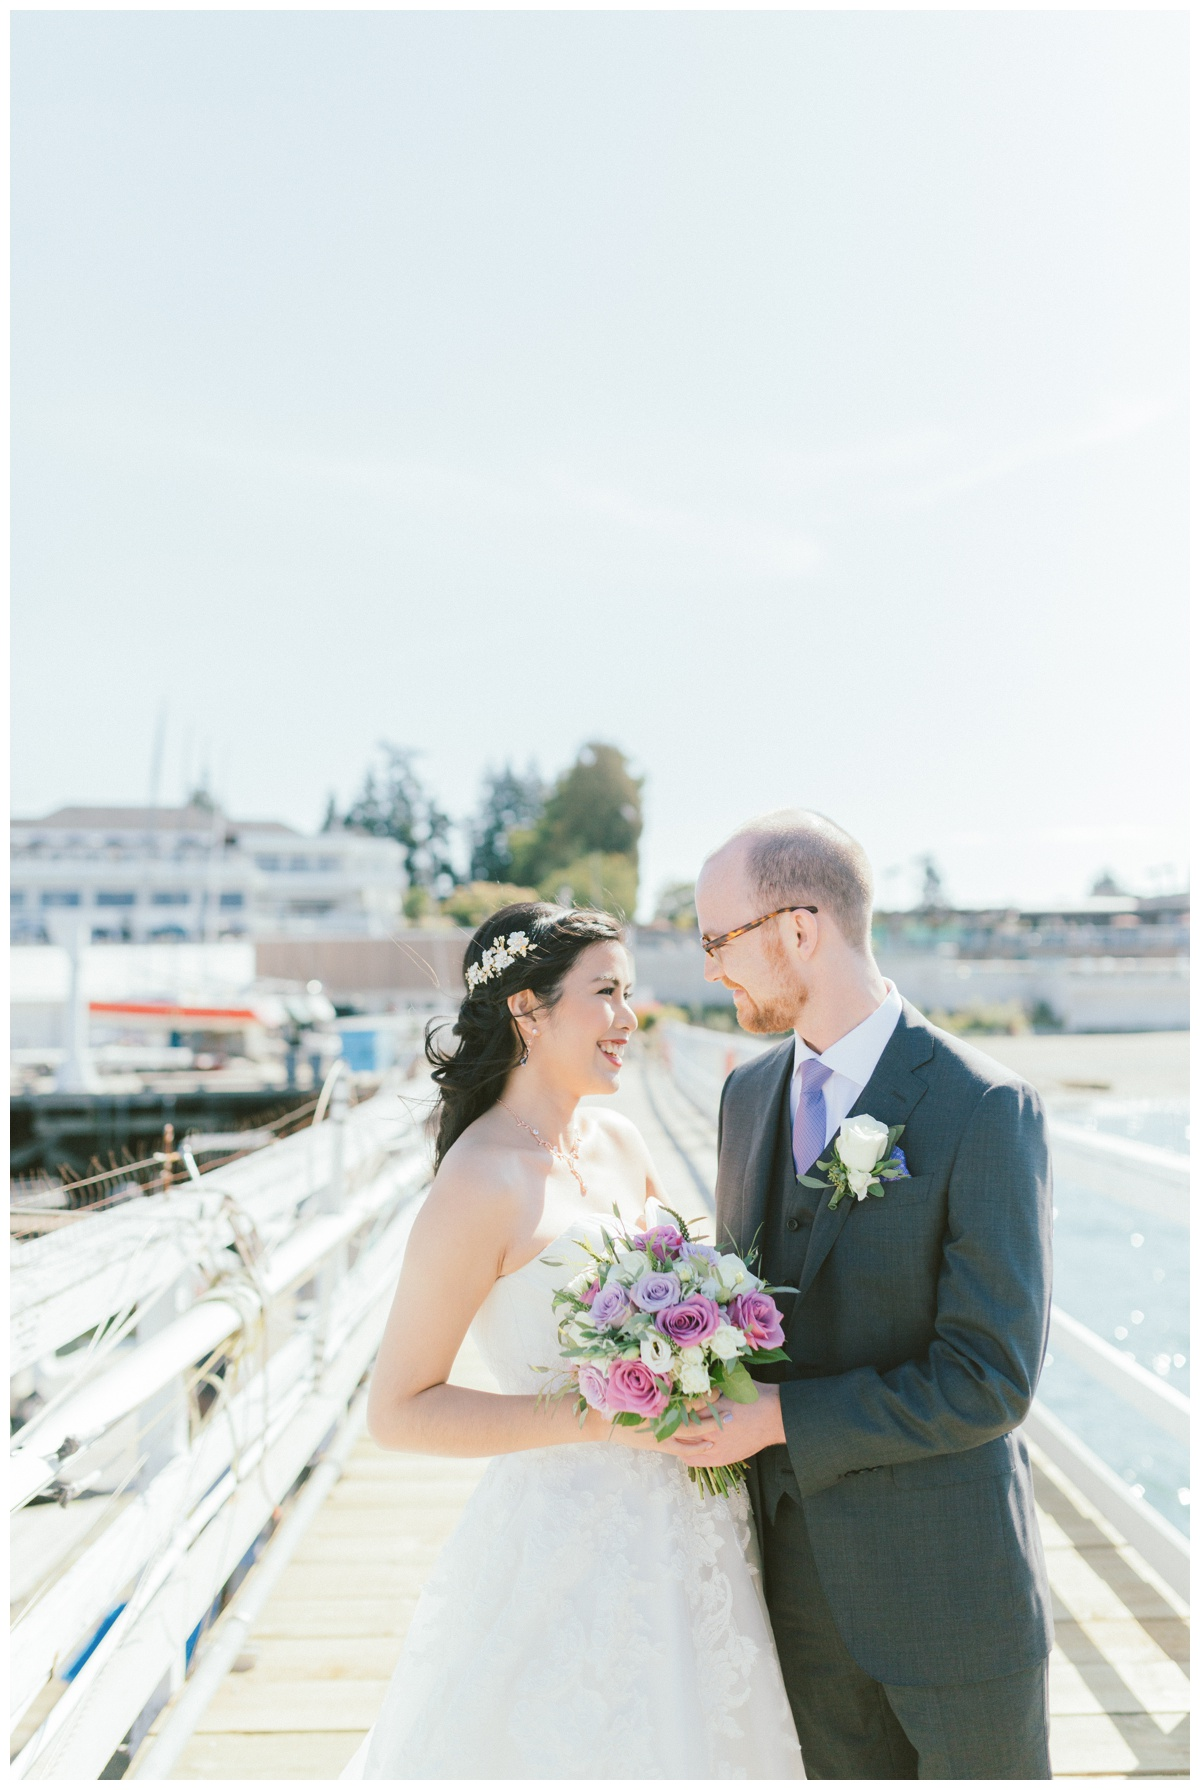 Mattie C. Fine Art Wedding Prewedding Photography Vancouver and Hong Kong 00096.jpg